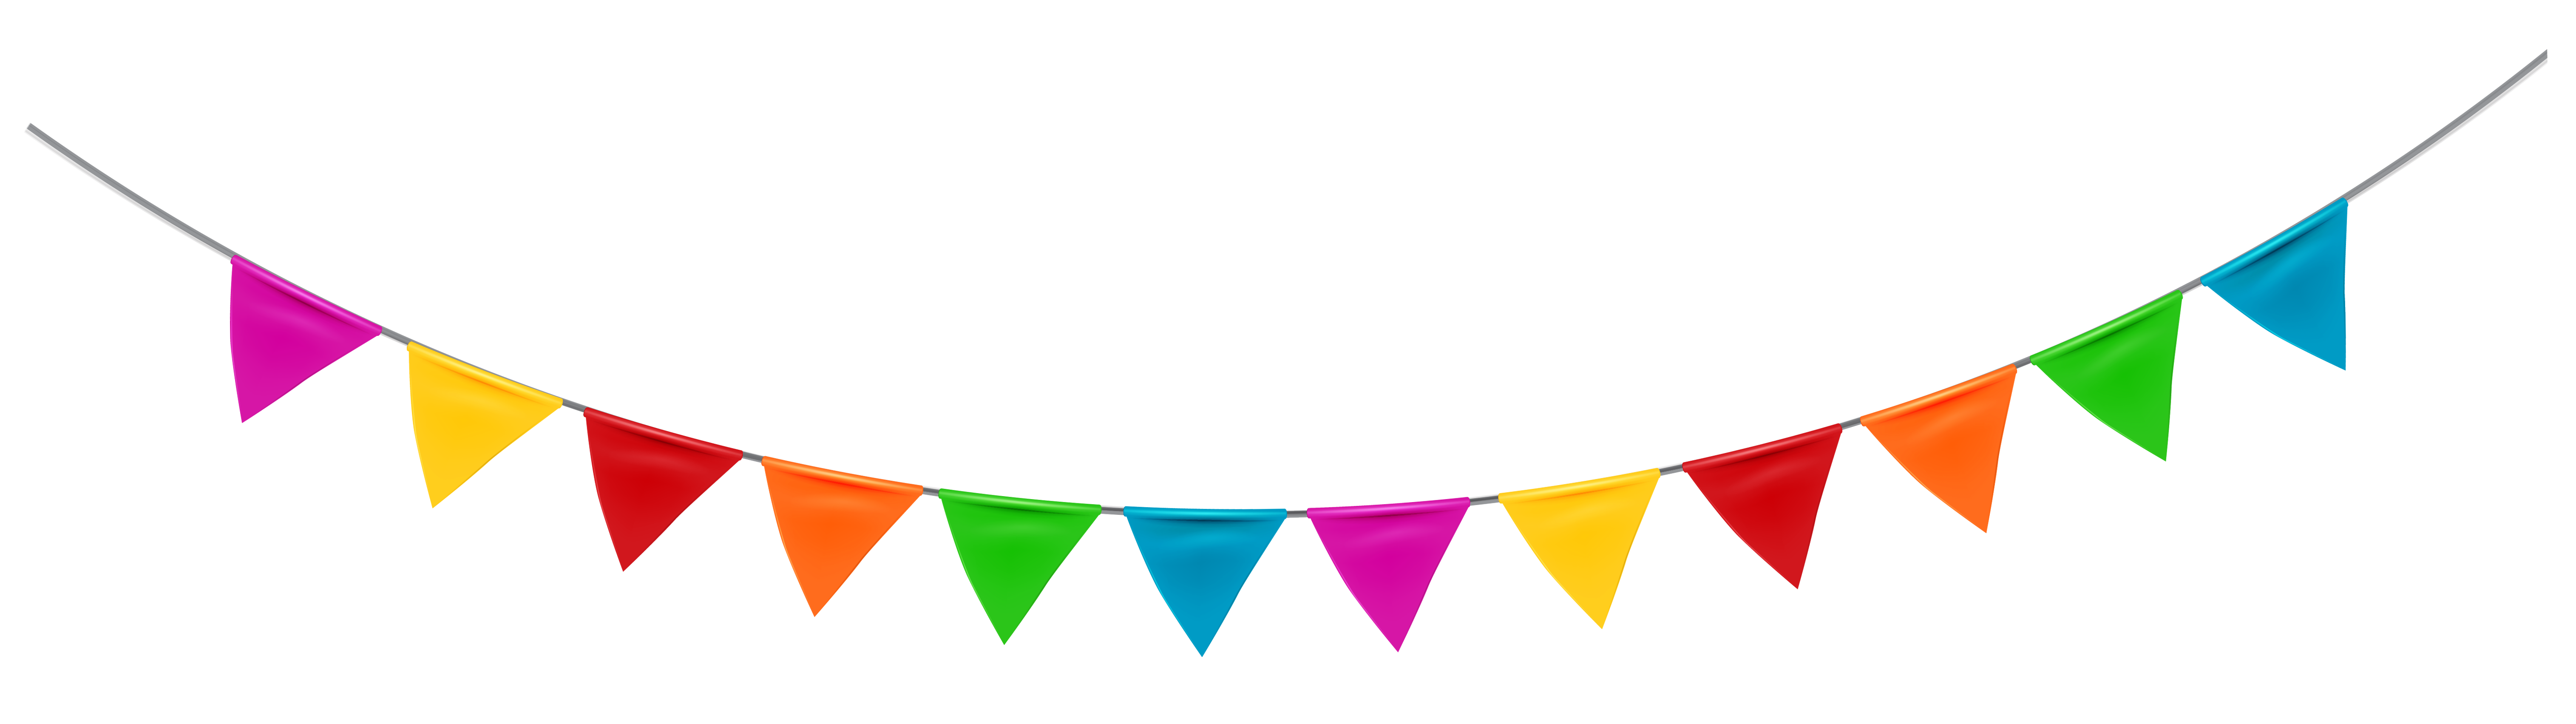 6060x1703 Party Png Picture Png Mart